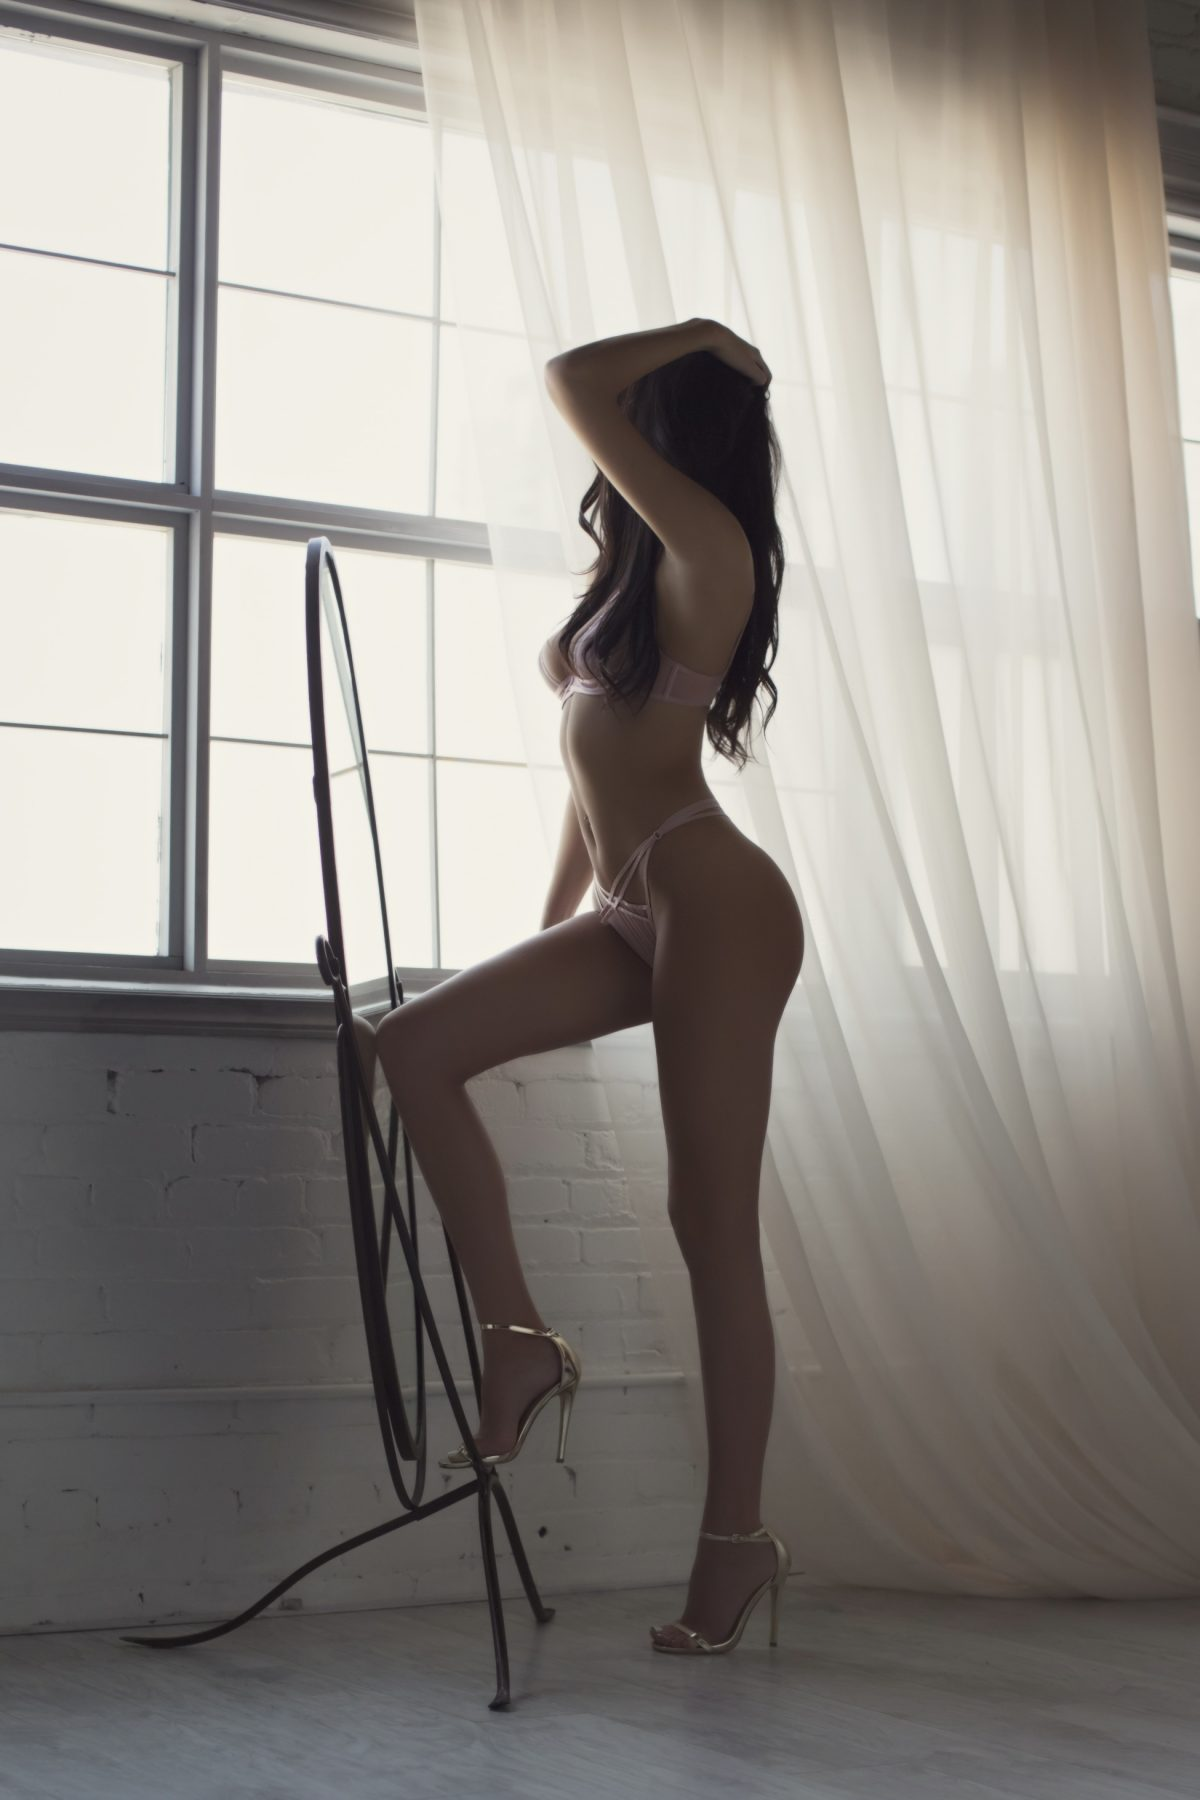 Toronto escorts companion upscale Angelina Interests Disability-friendly Non-smoking Age Young Figure Slender Tall Breasts Natural Hair Raven-Haired Ethnicity European Tattoos Small